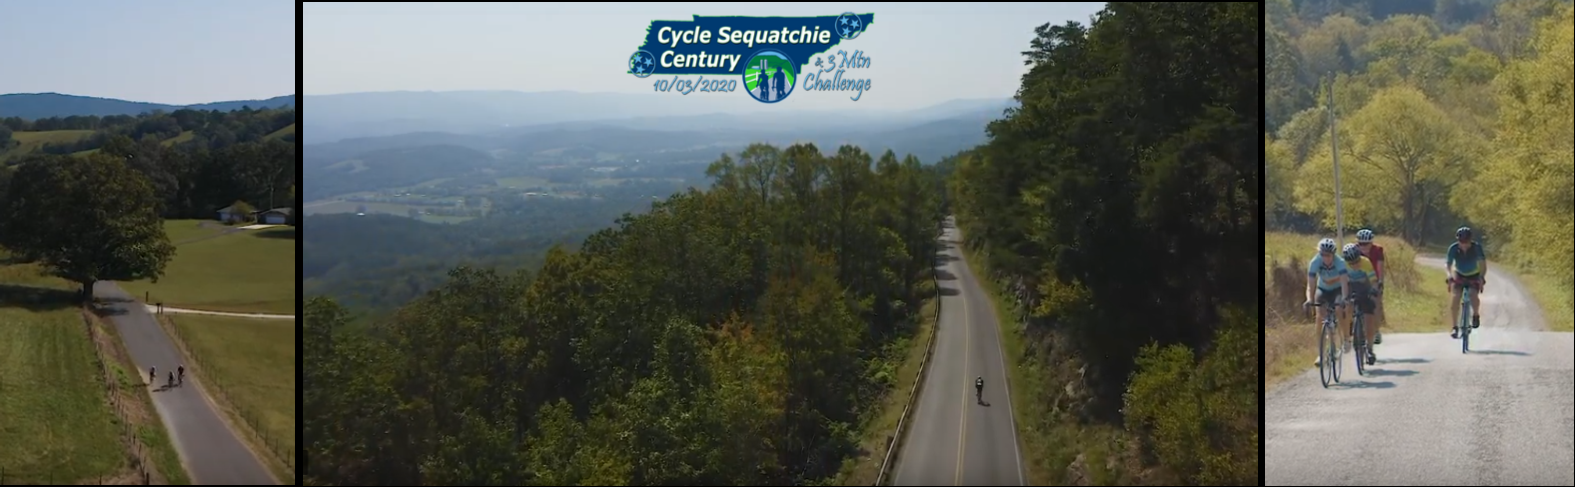 Cycle Sequatchie 2020 slider pic